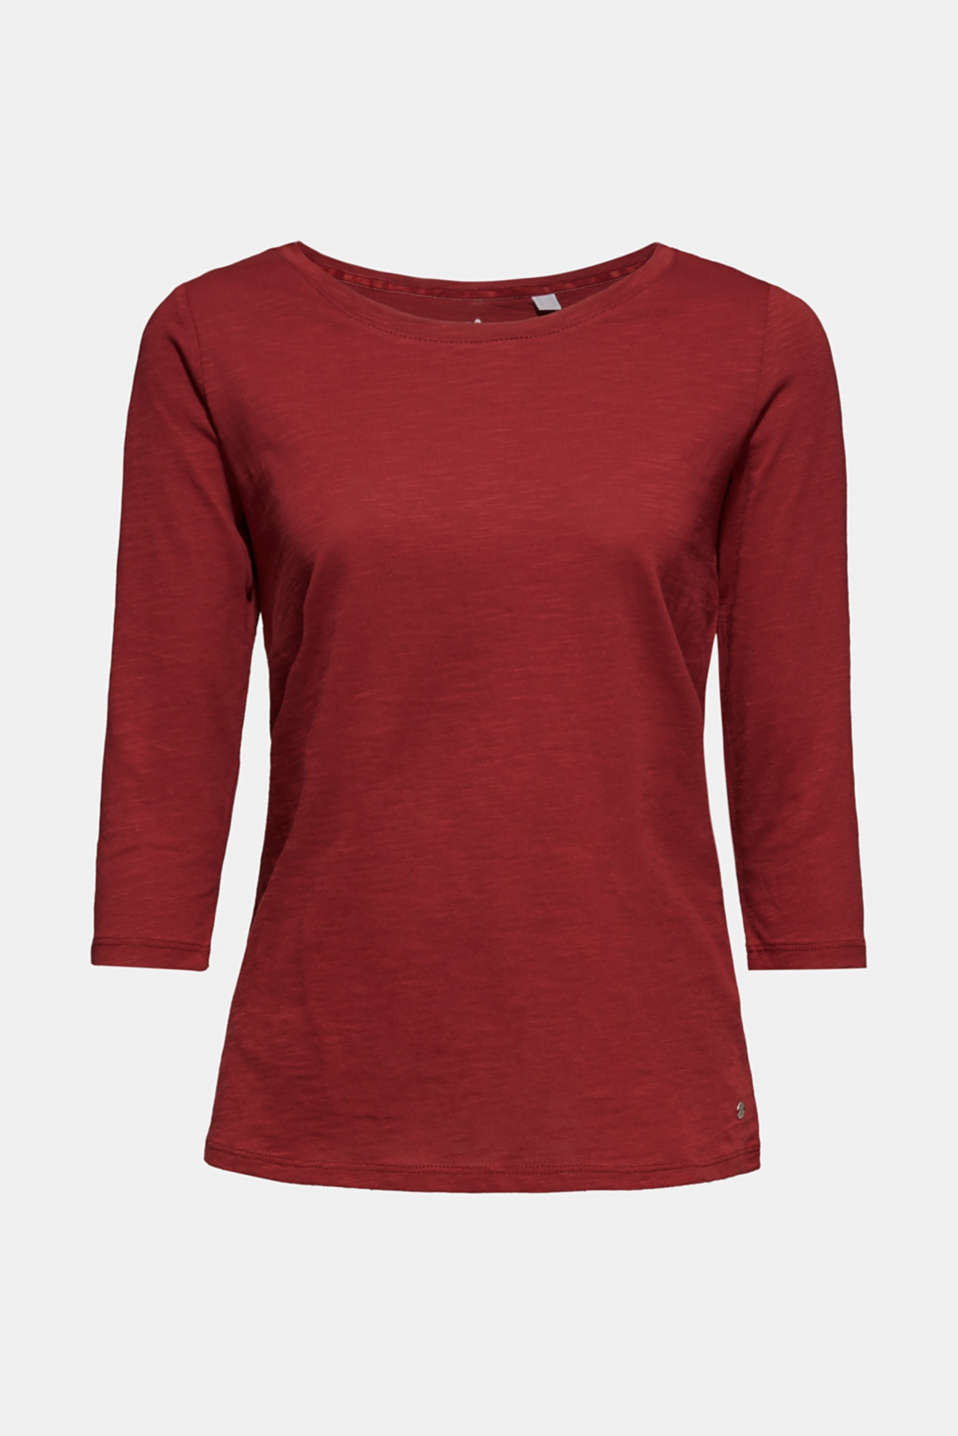 Long sleeve top with a large neckline, 100% cotton, GARNET RED 5, detail image number 5